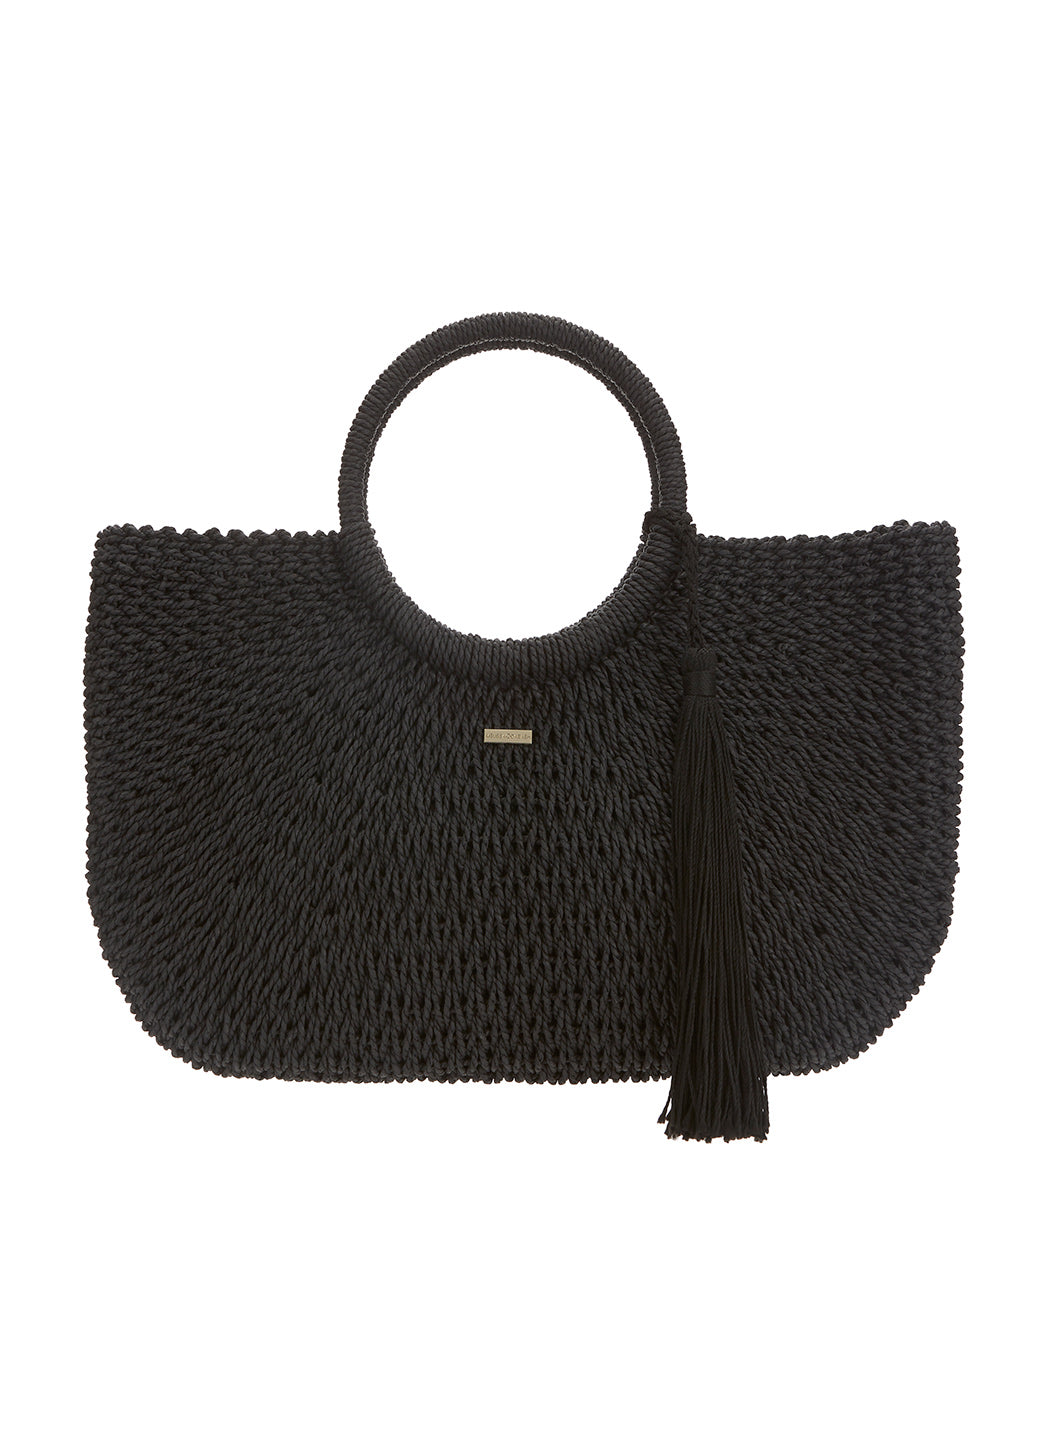 Sorrento Woven Basket Tassle Bag Black